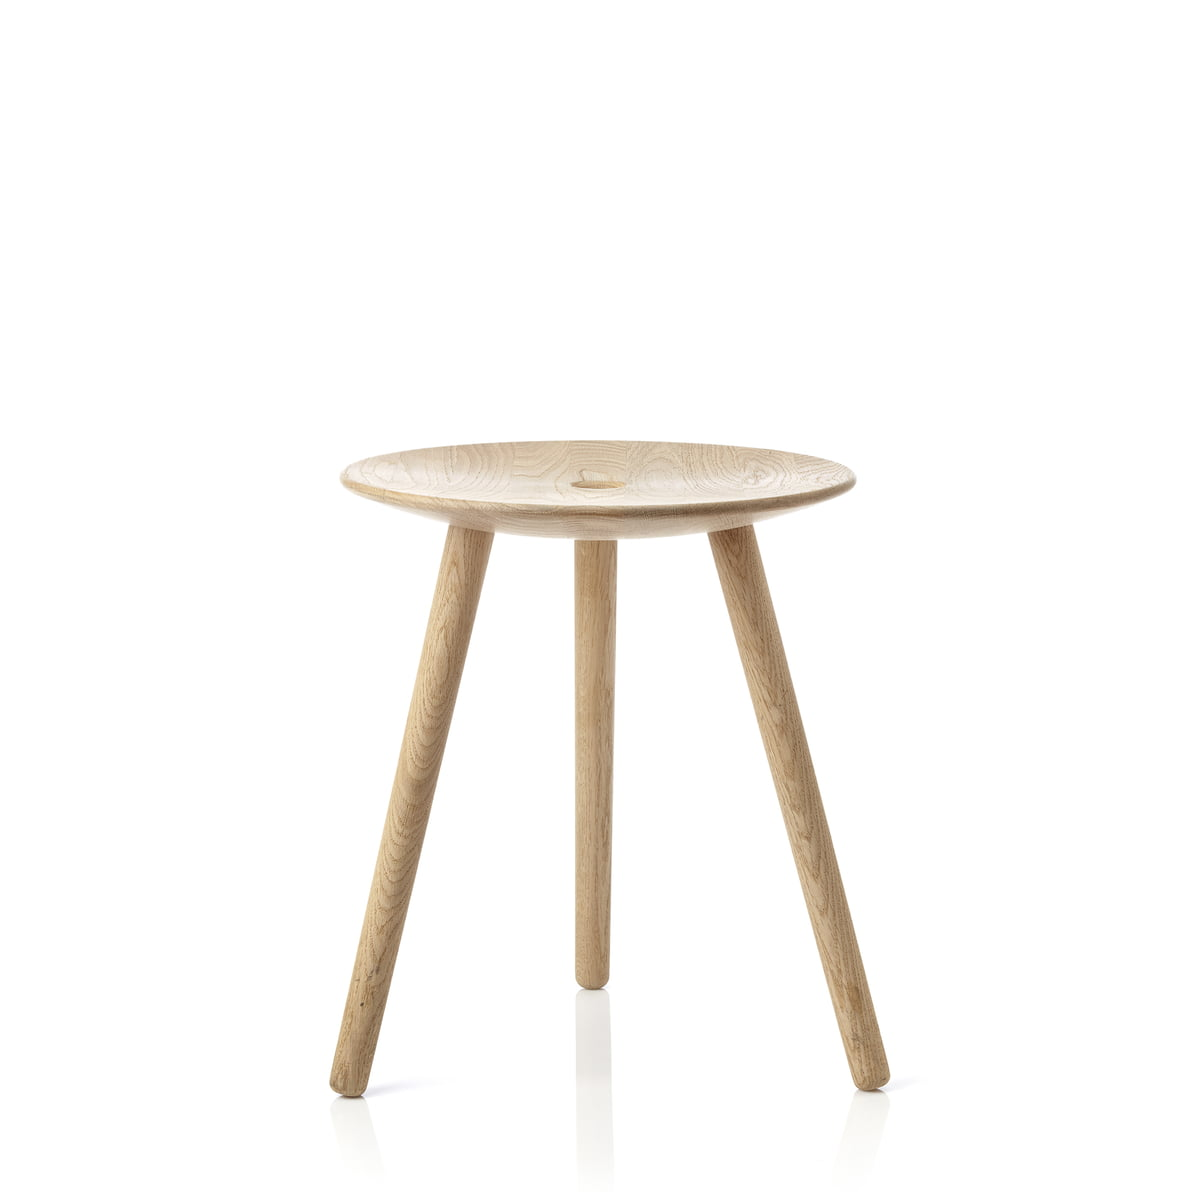 Di Volo Stool Von Applicata Im Shop